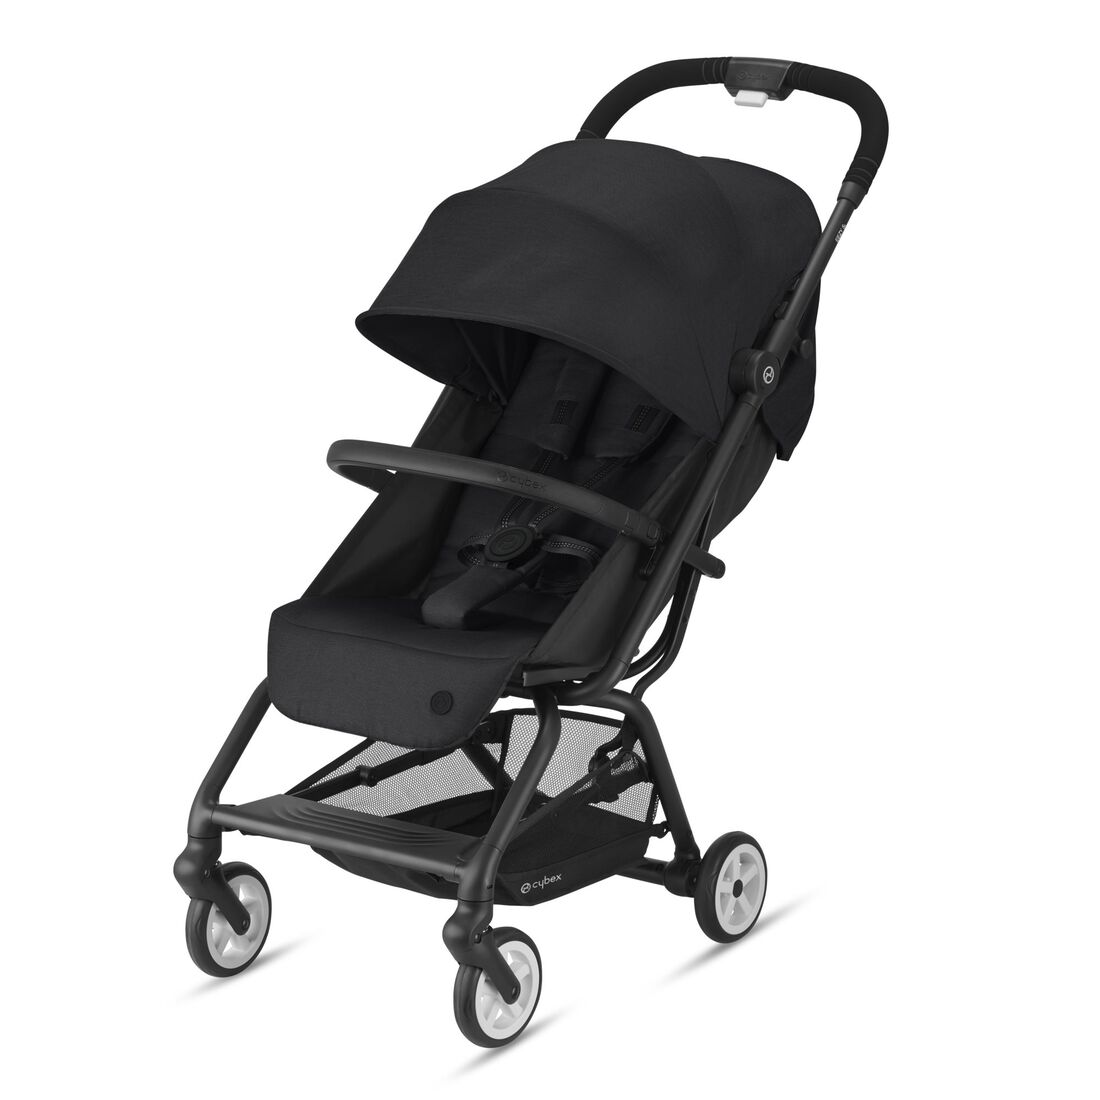 NEW Cybex Libelle Strollers: In-Depth Review | The ...